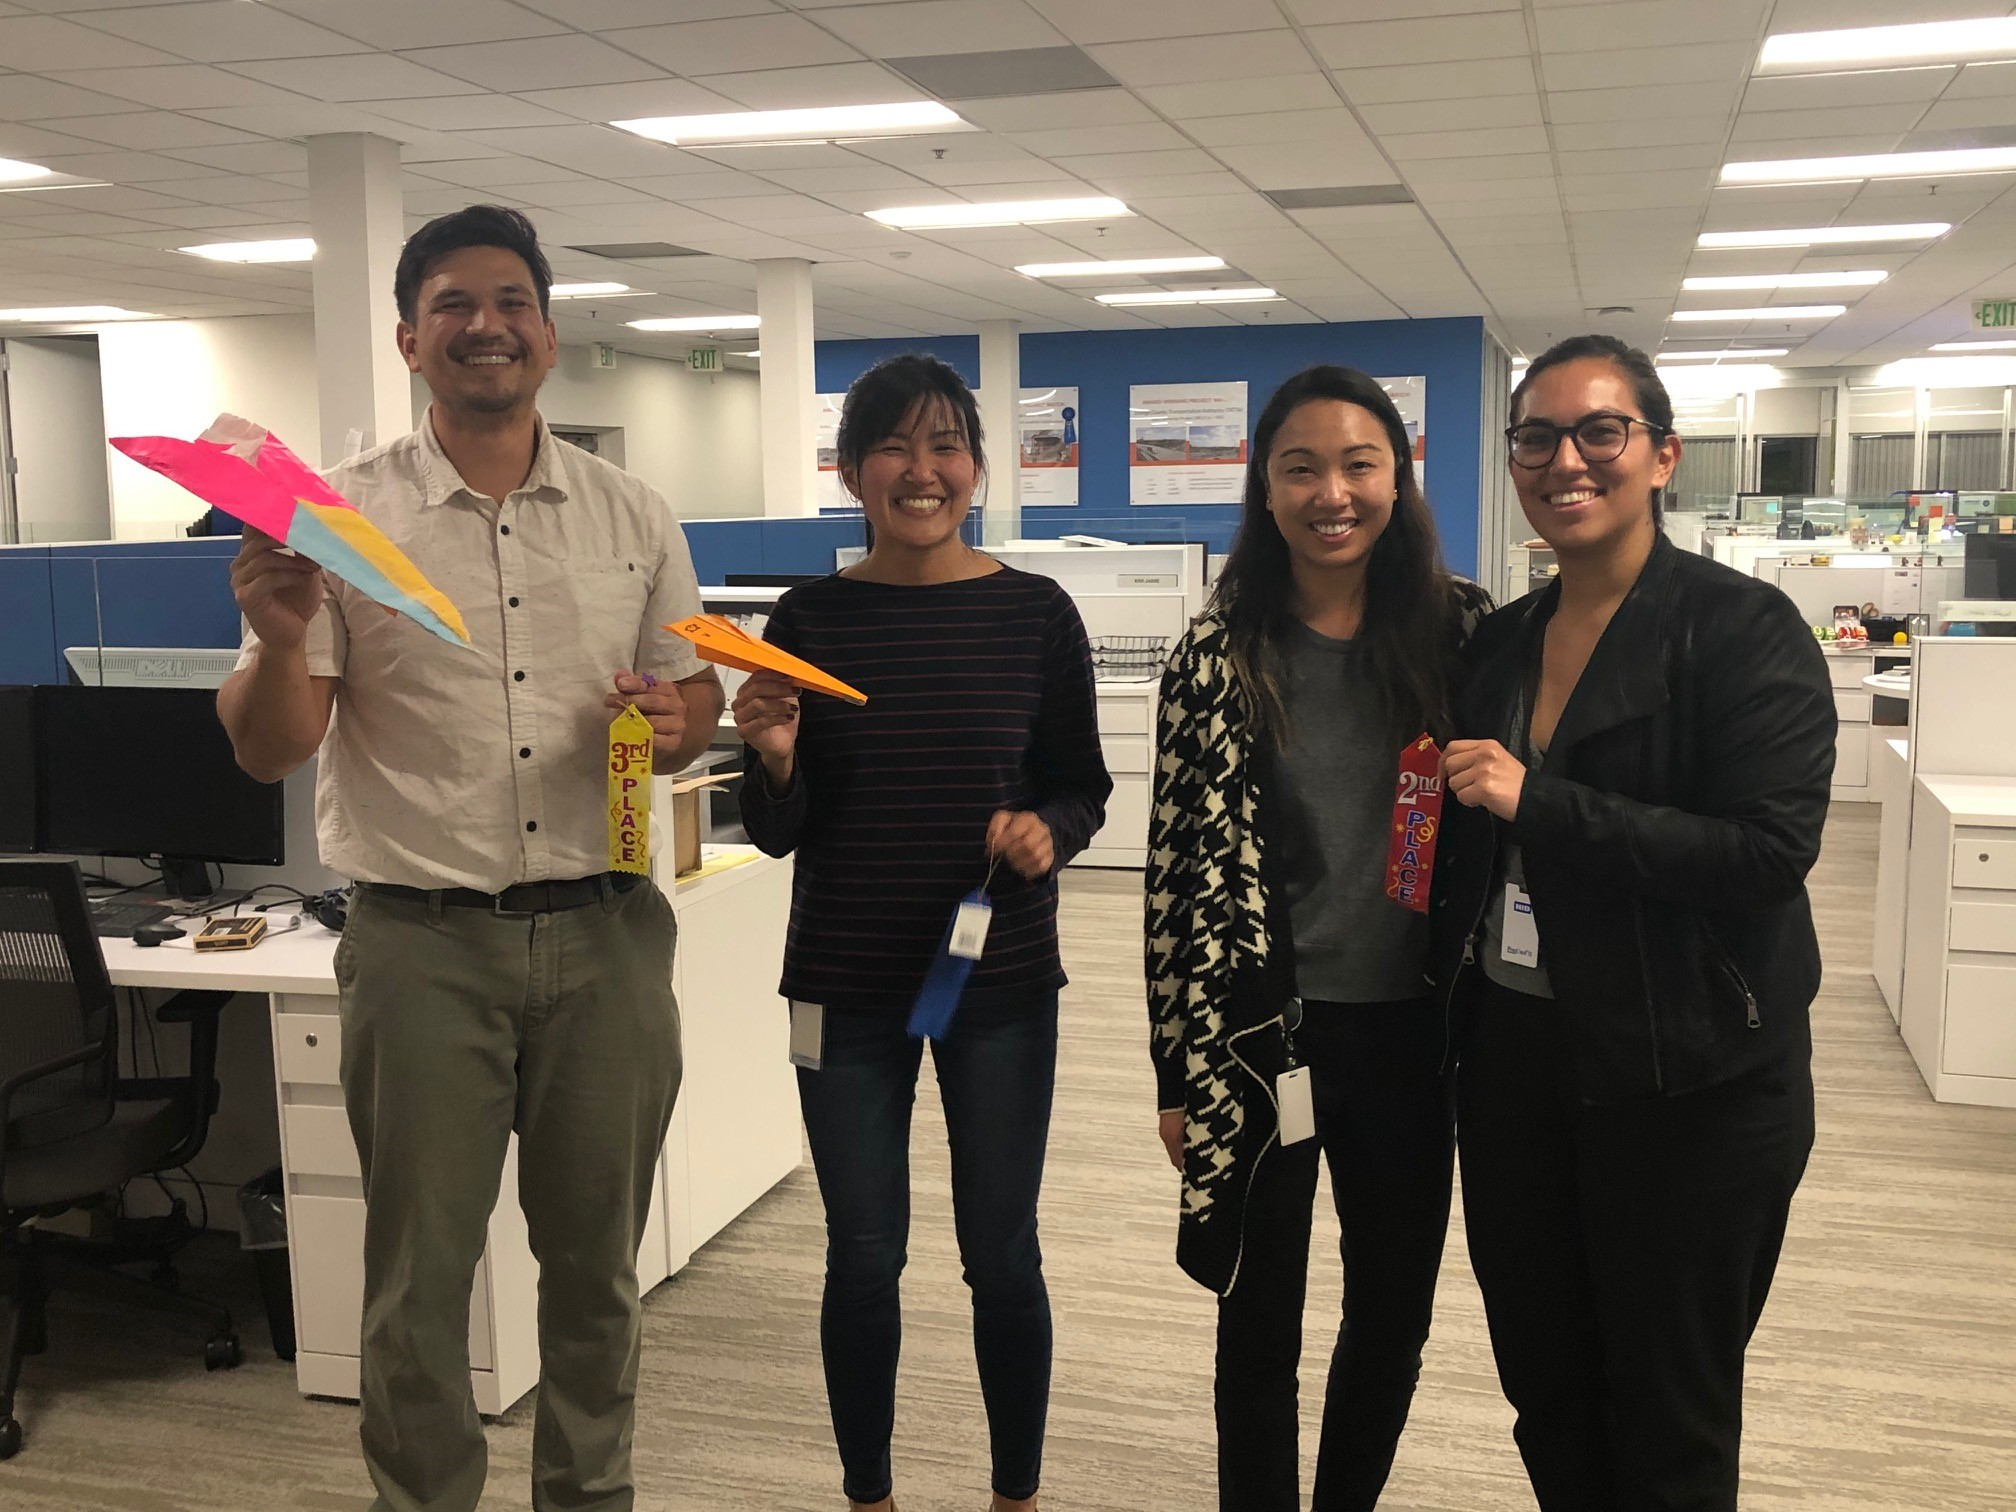 Harris employees celebrating National Engineers Week with a paper airplane competition.